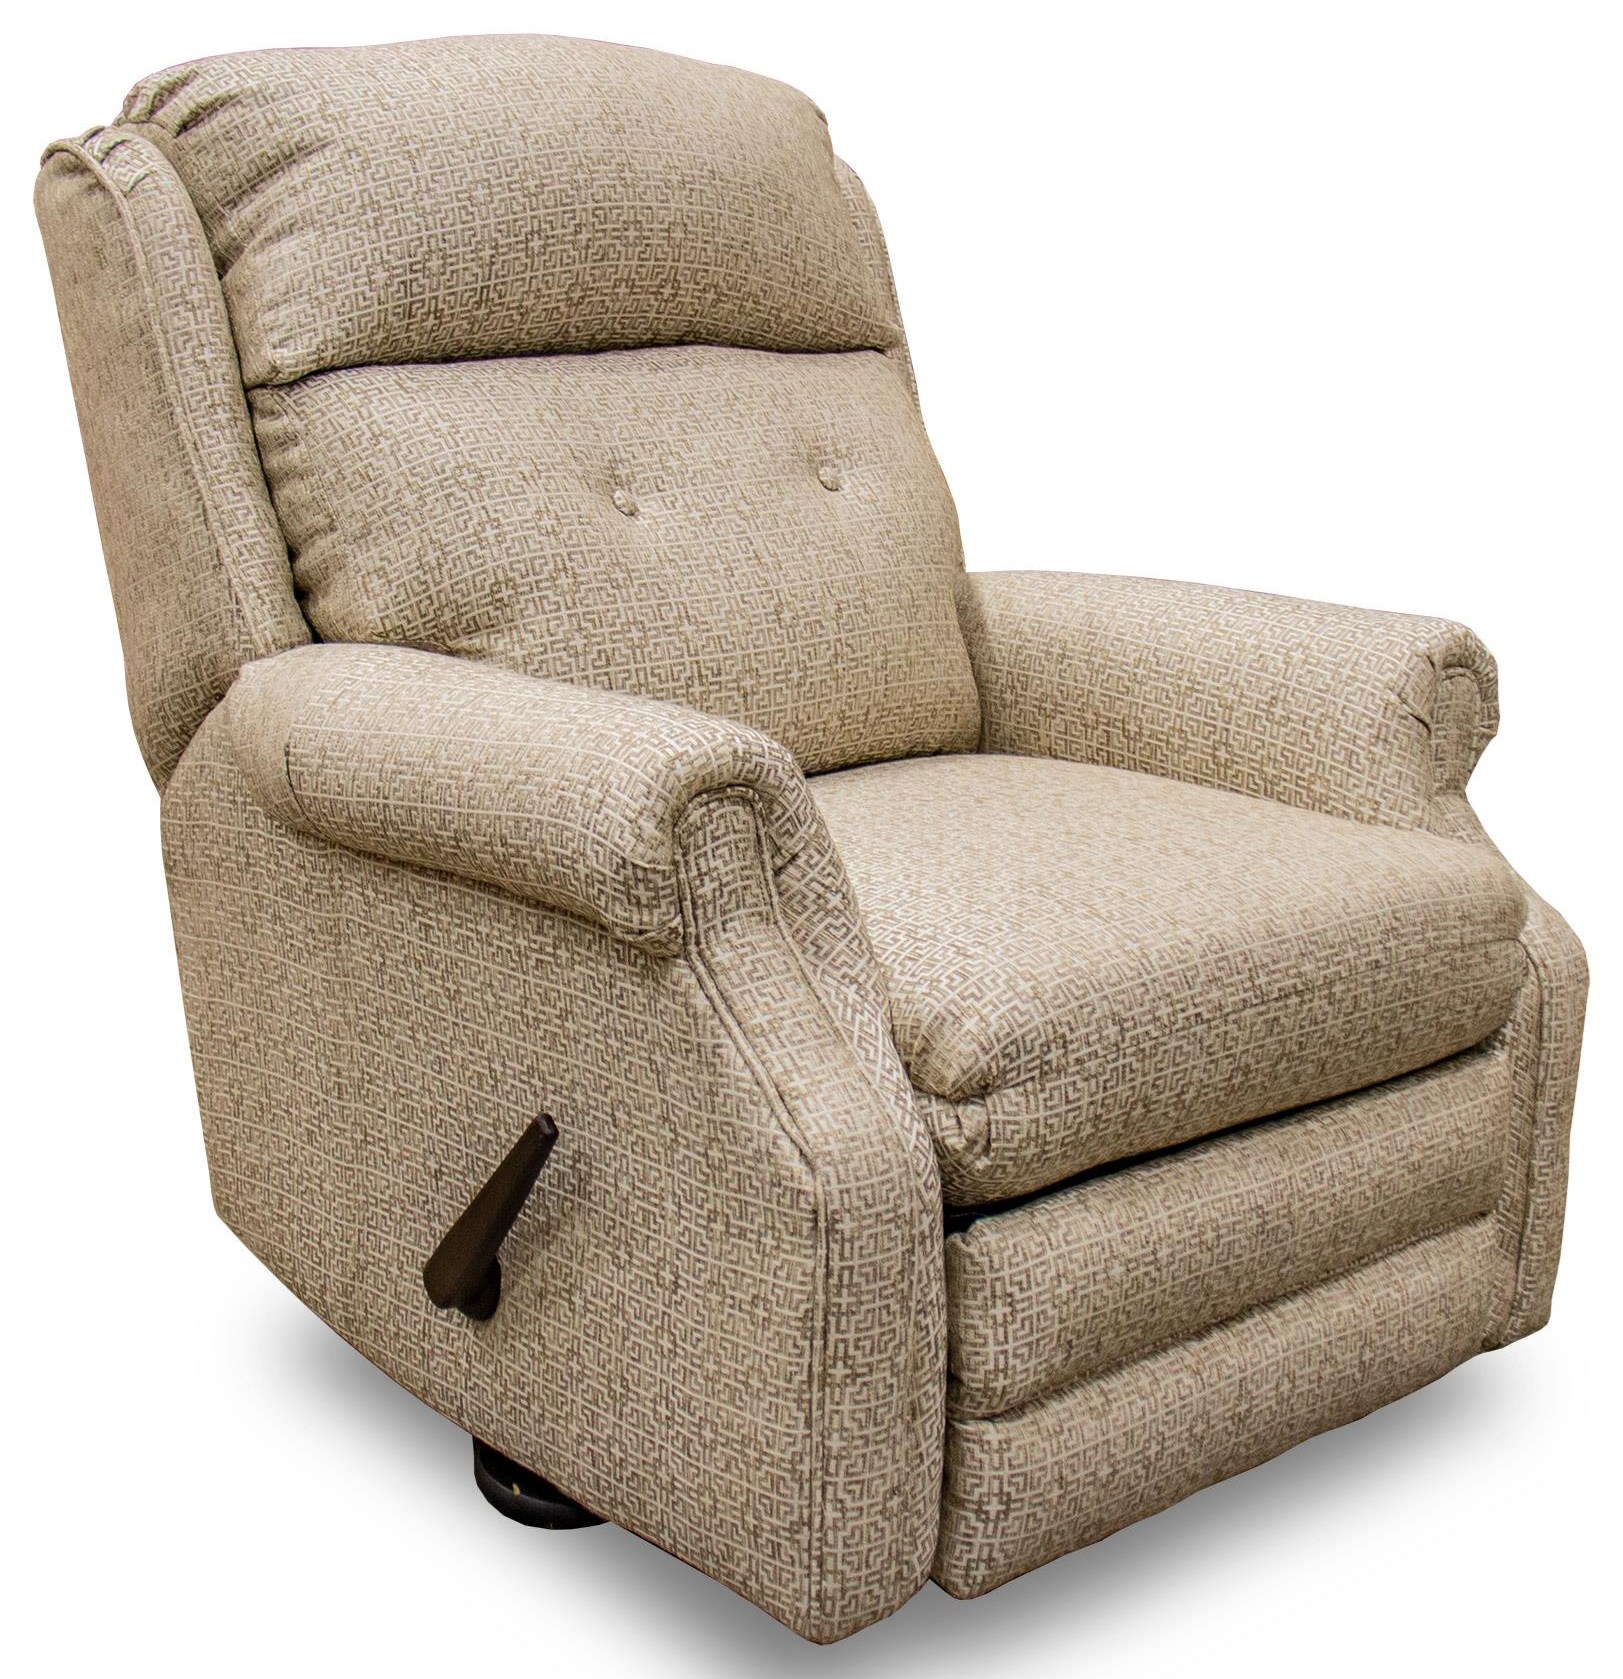 Nantucket Rocker Recliner